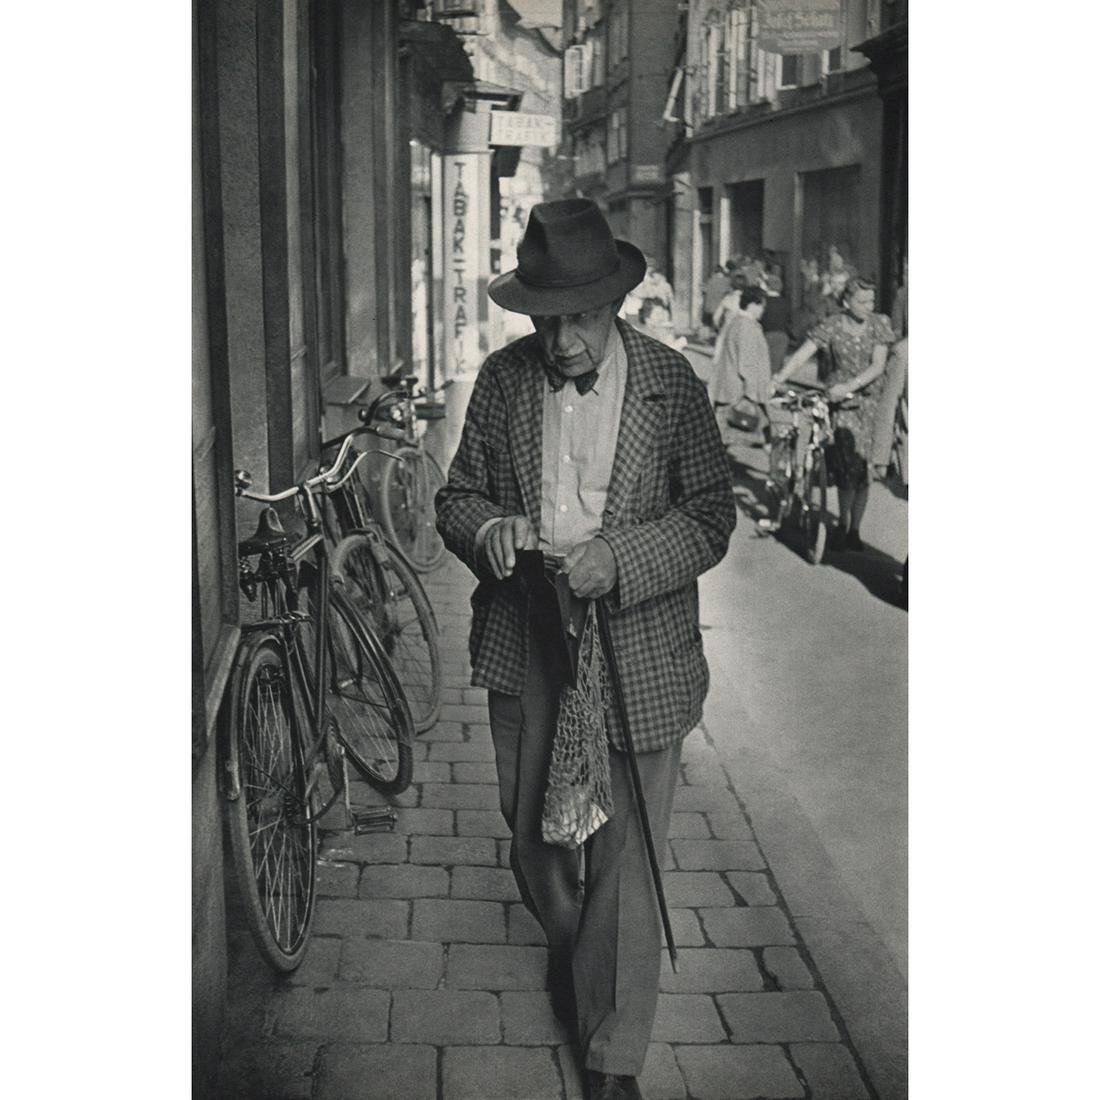 HENRI CARTIER-BRESSON - In the Getreidegasse, Salzburg